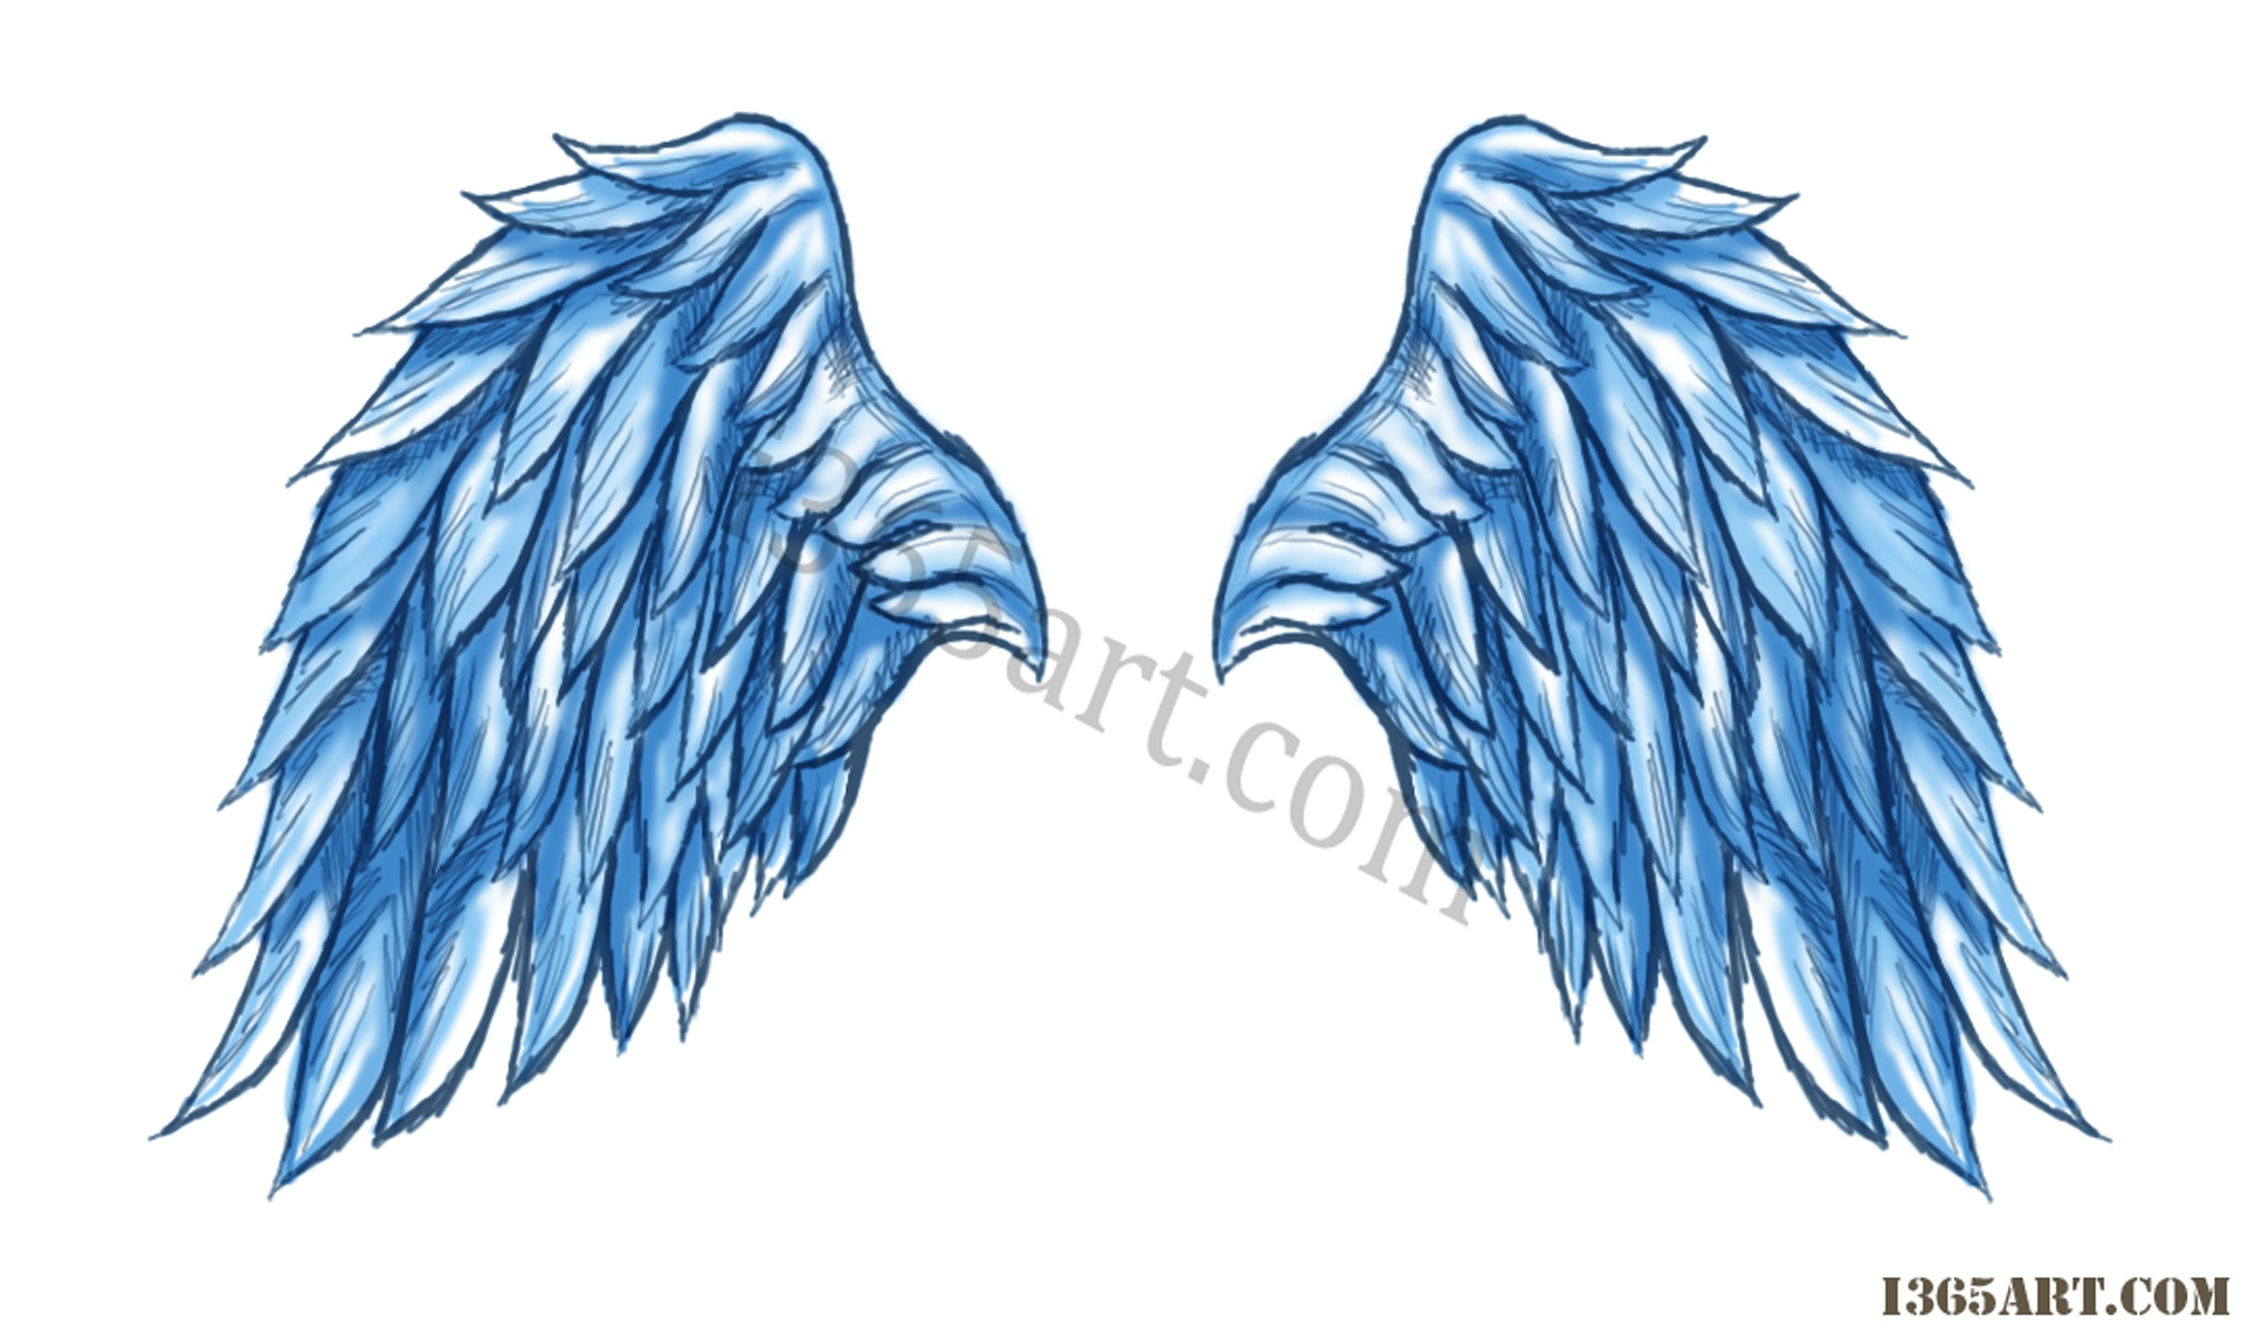 2252x1340 Angel Wing Drawings Angel Wings With Halo Drawings Free Download